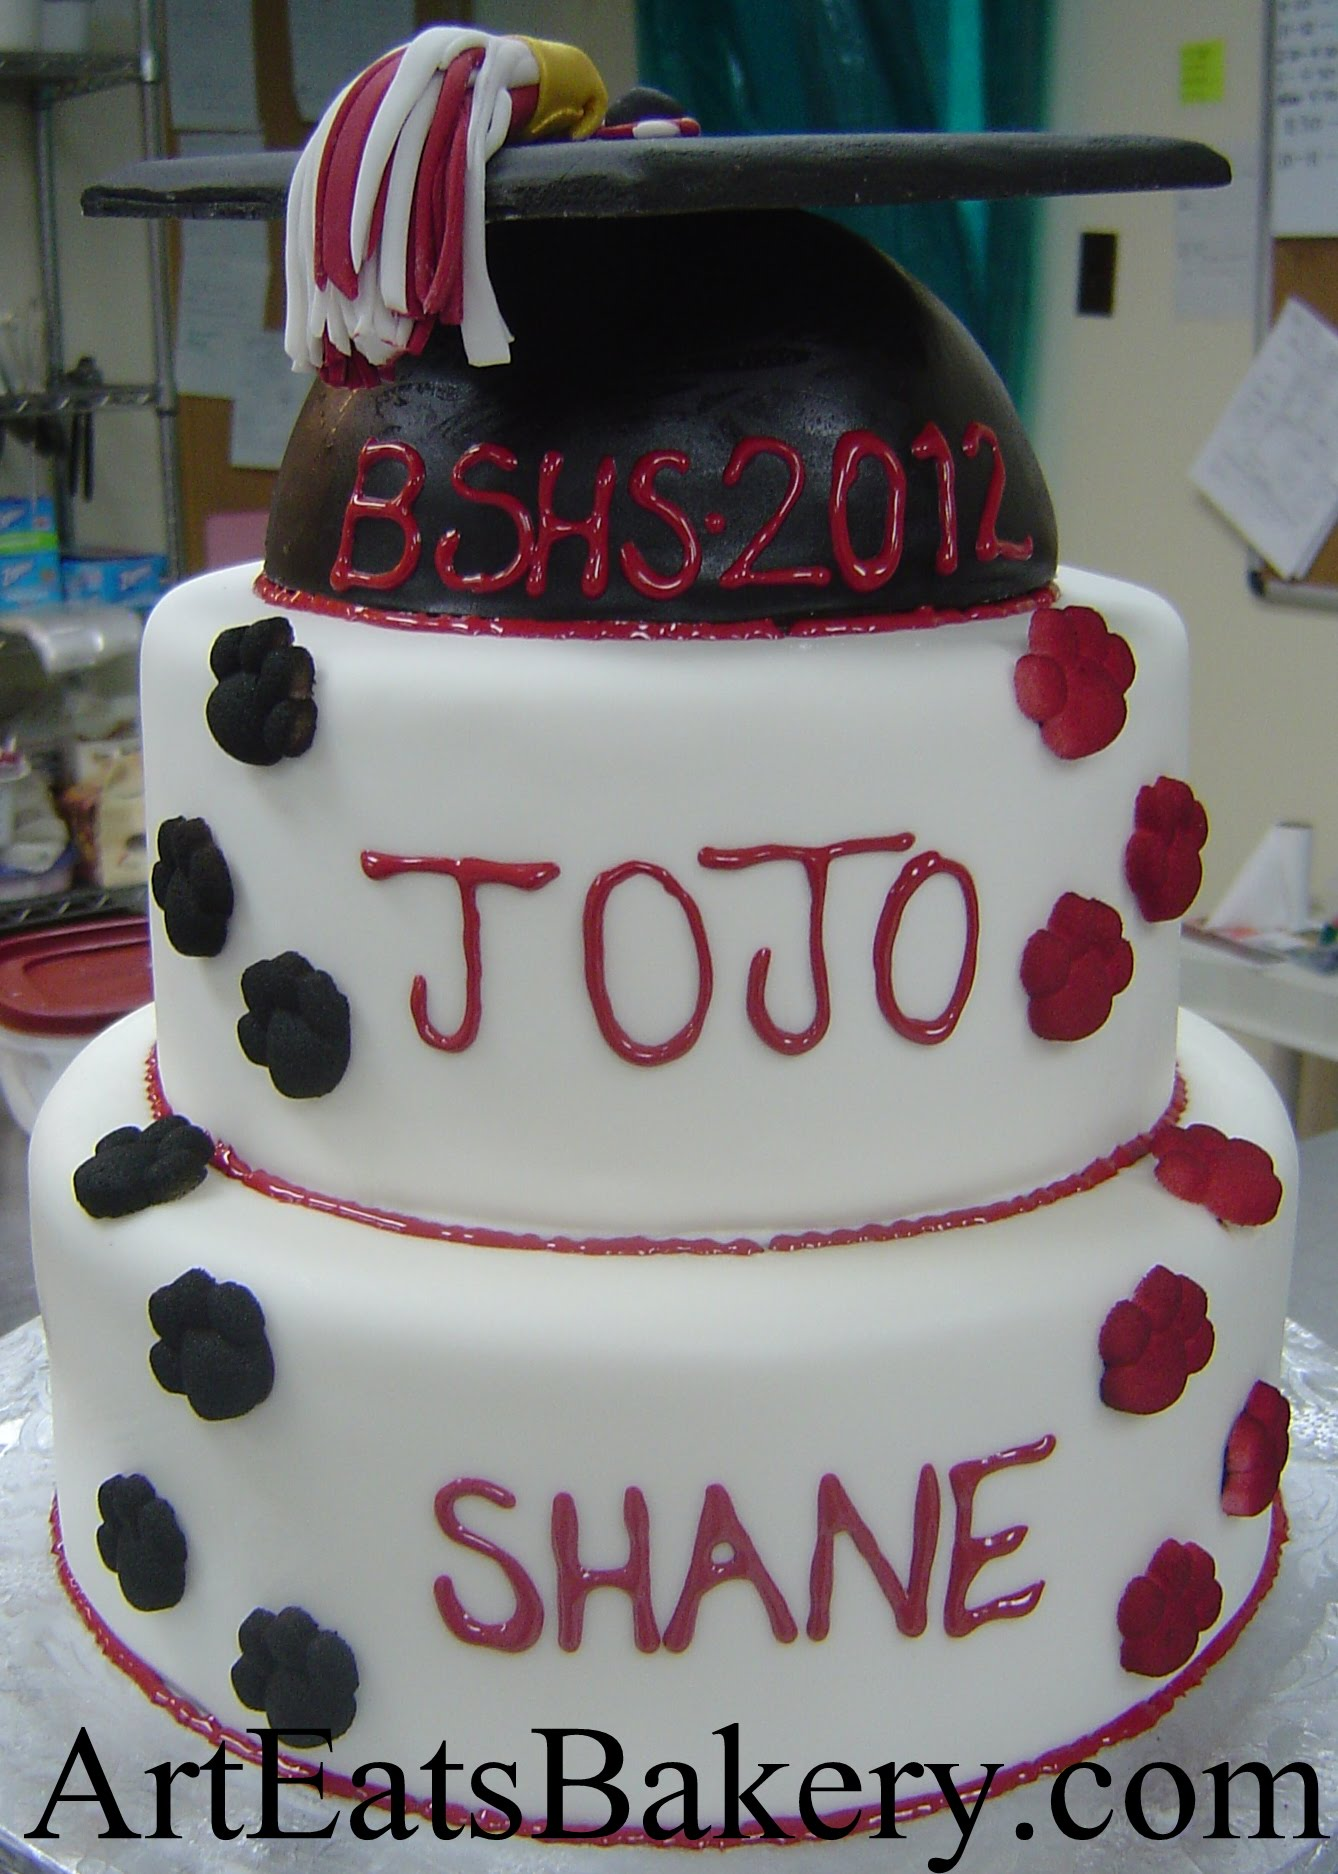 Perfect Two Tier White, Black And Red Unique Custom Graduation Cake Design Idea  With Cap Topper